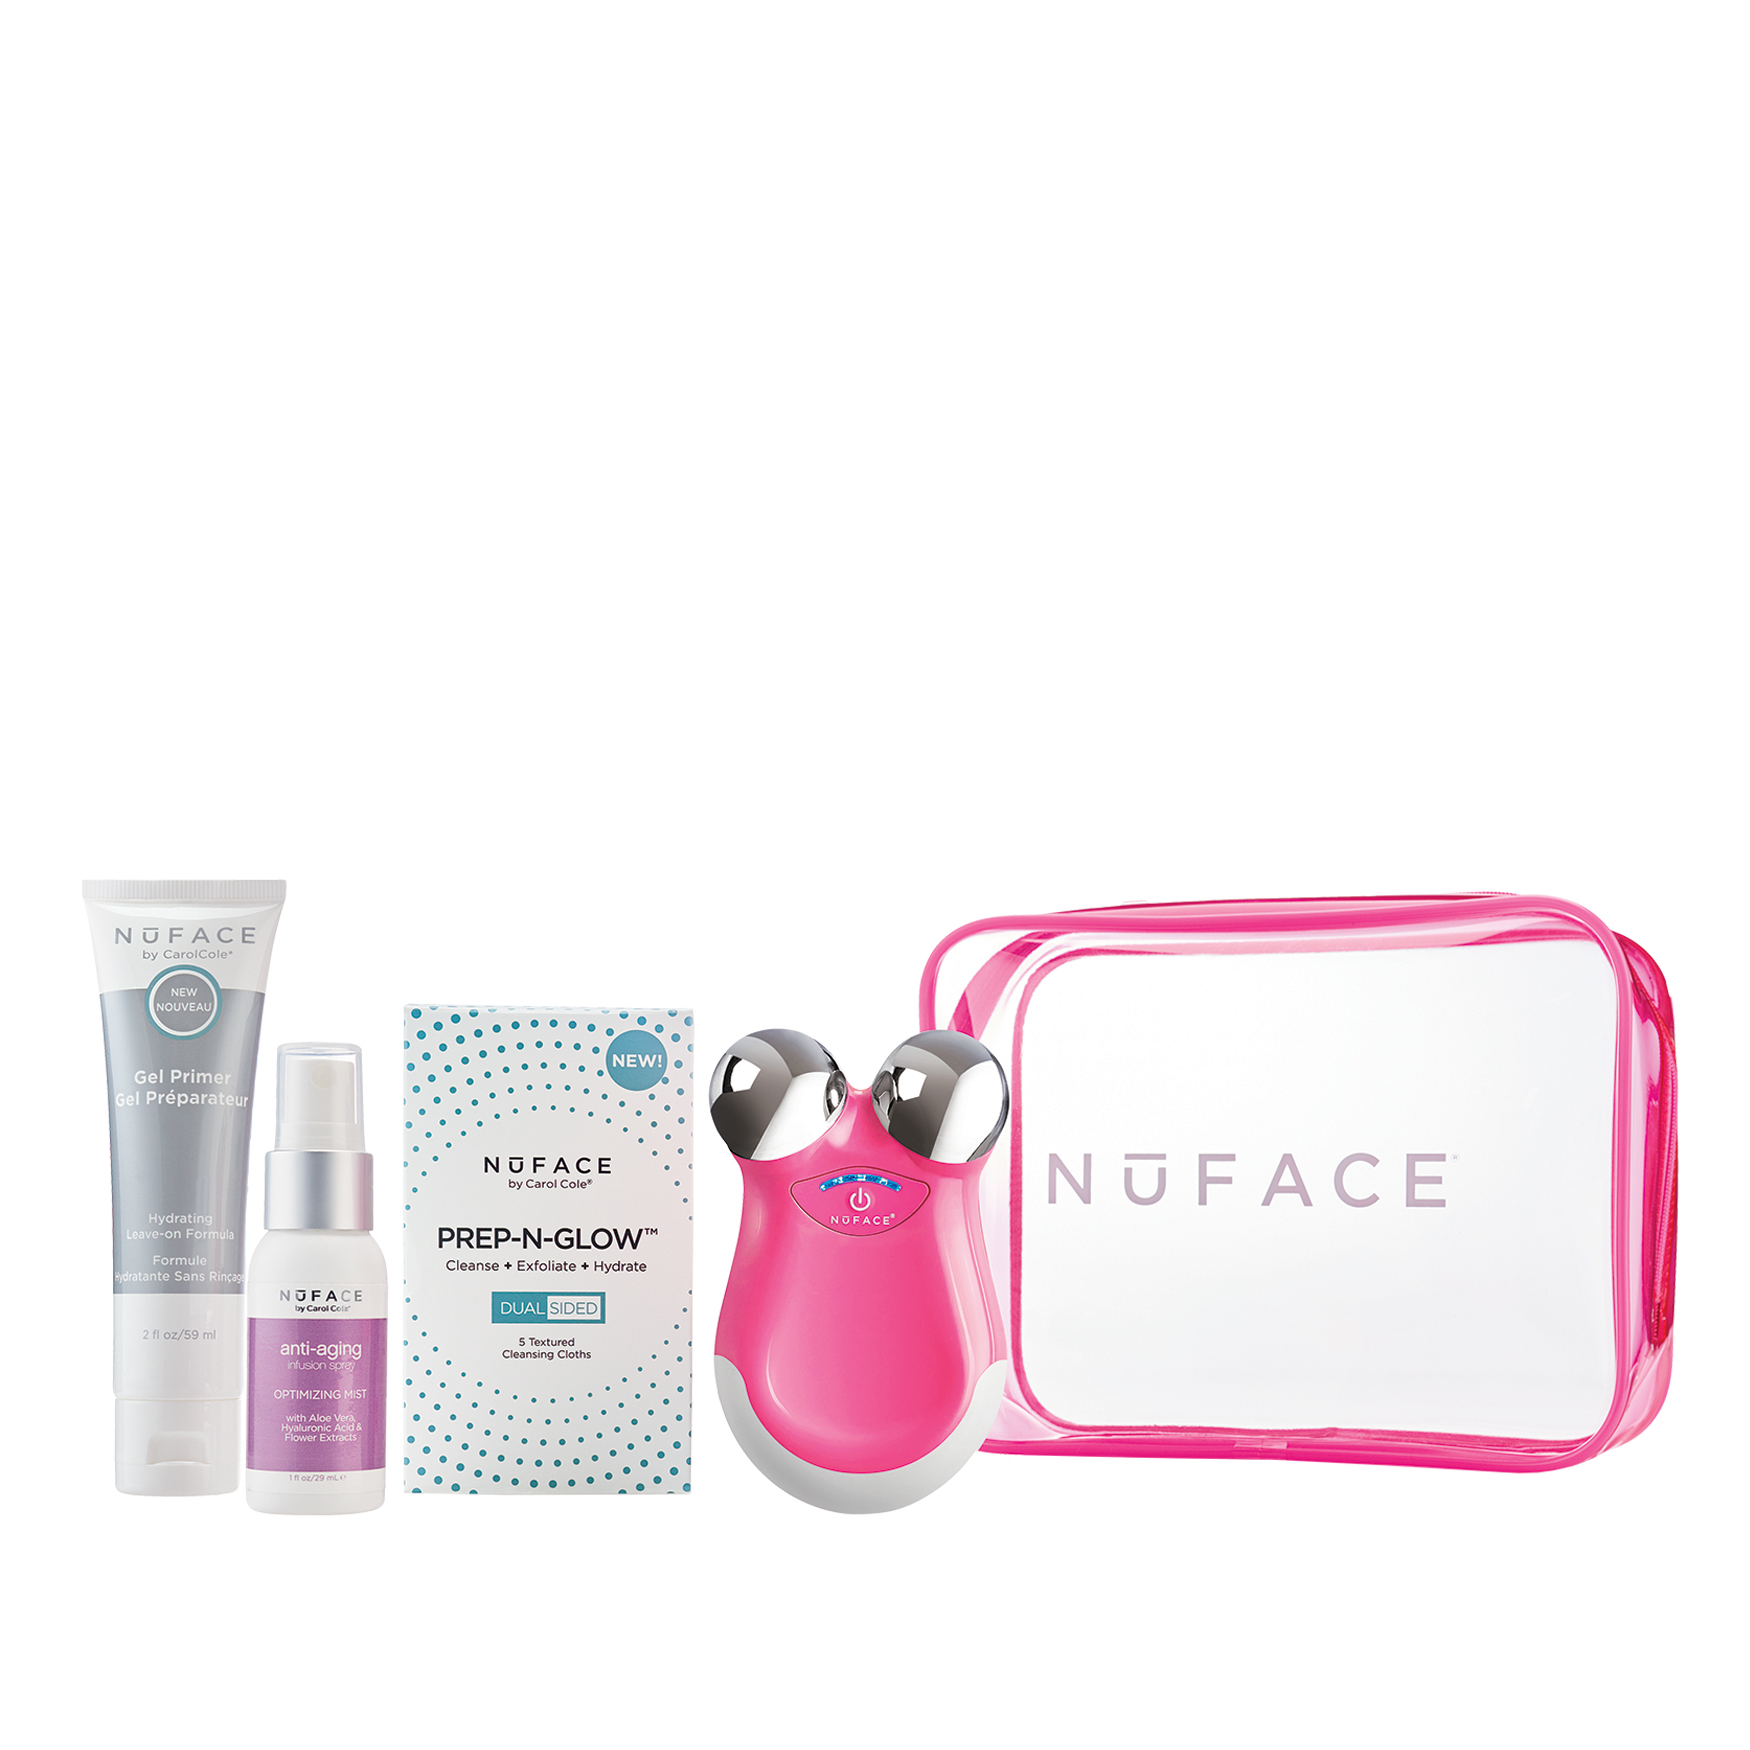 Nuface Facial Mask Uk200021521